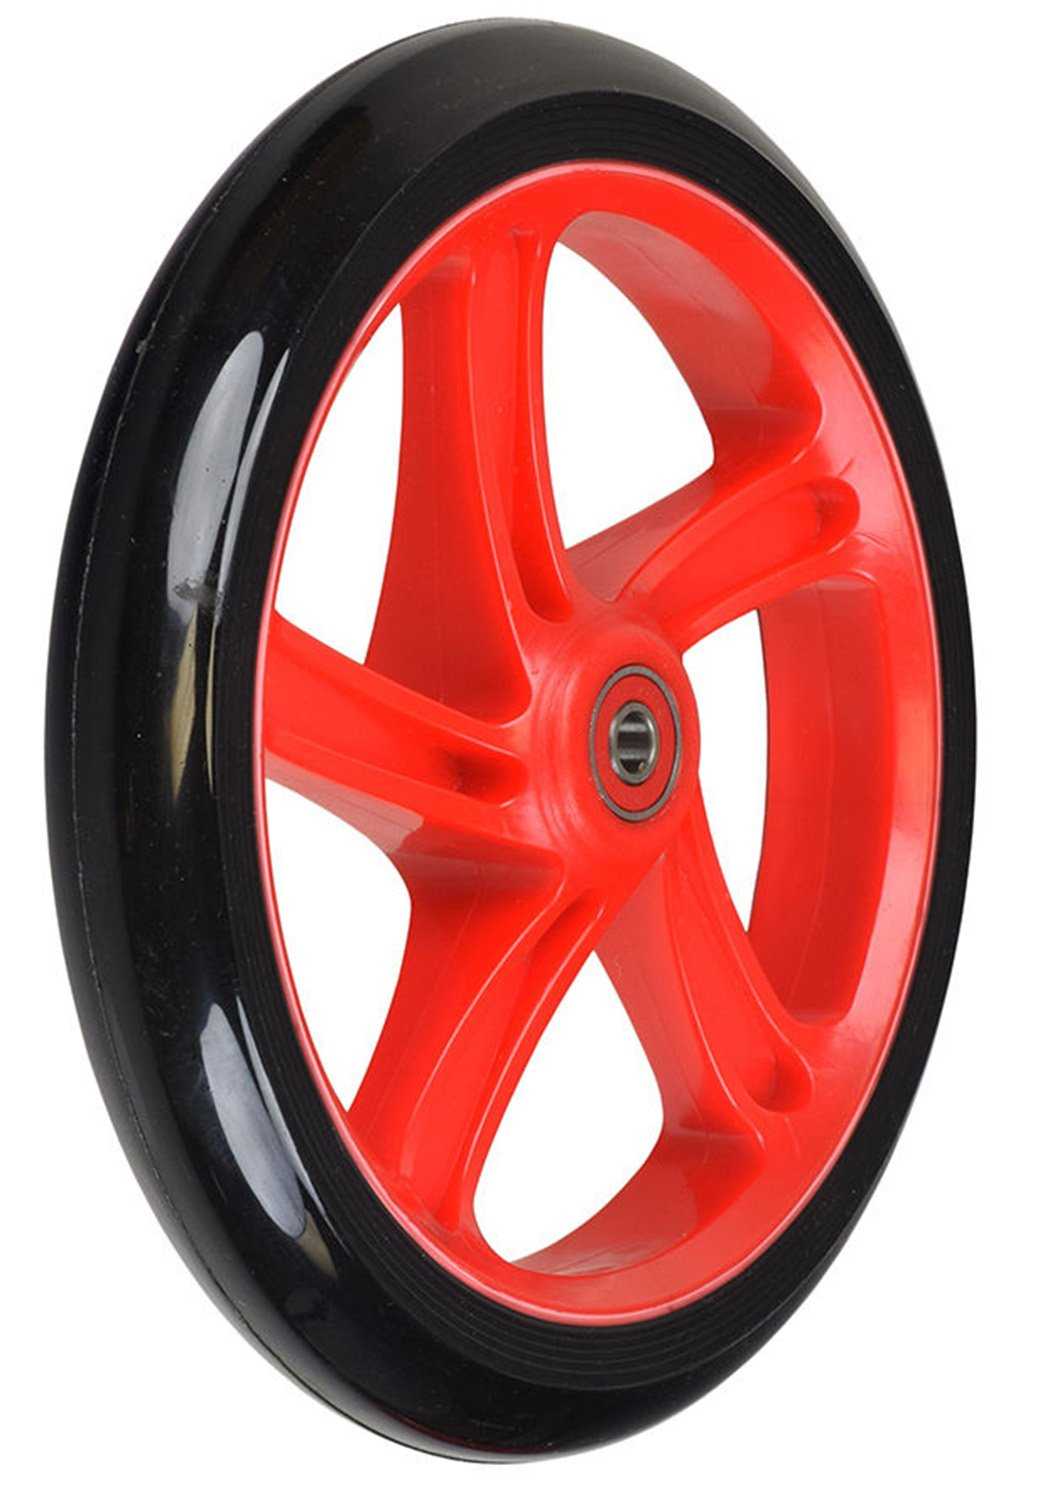 Replacement Wheel for the Razor A5 Lux Kick Scooter 200 mm (8''): Black Wheel with RED Hub